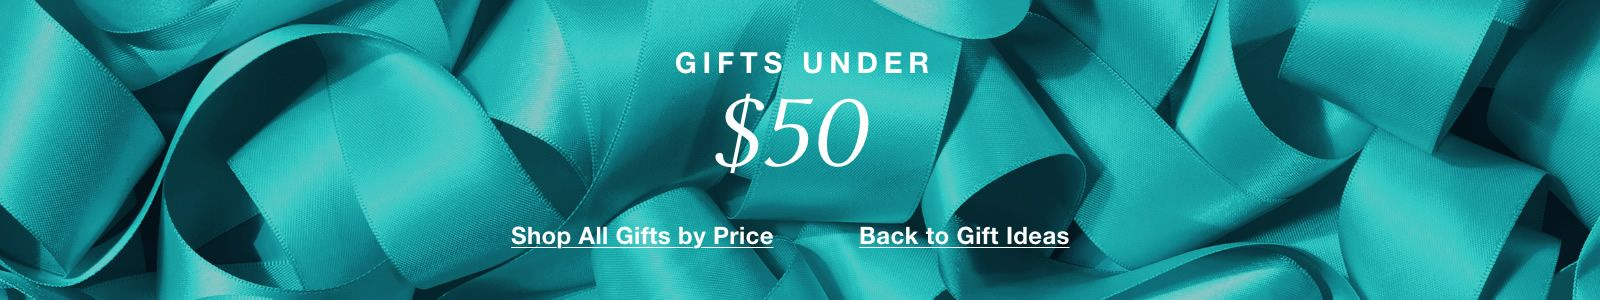 Gift Under, $ 50, Shop All Gifts by Price, Back to Gift Ideas